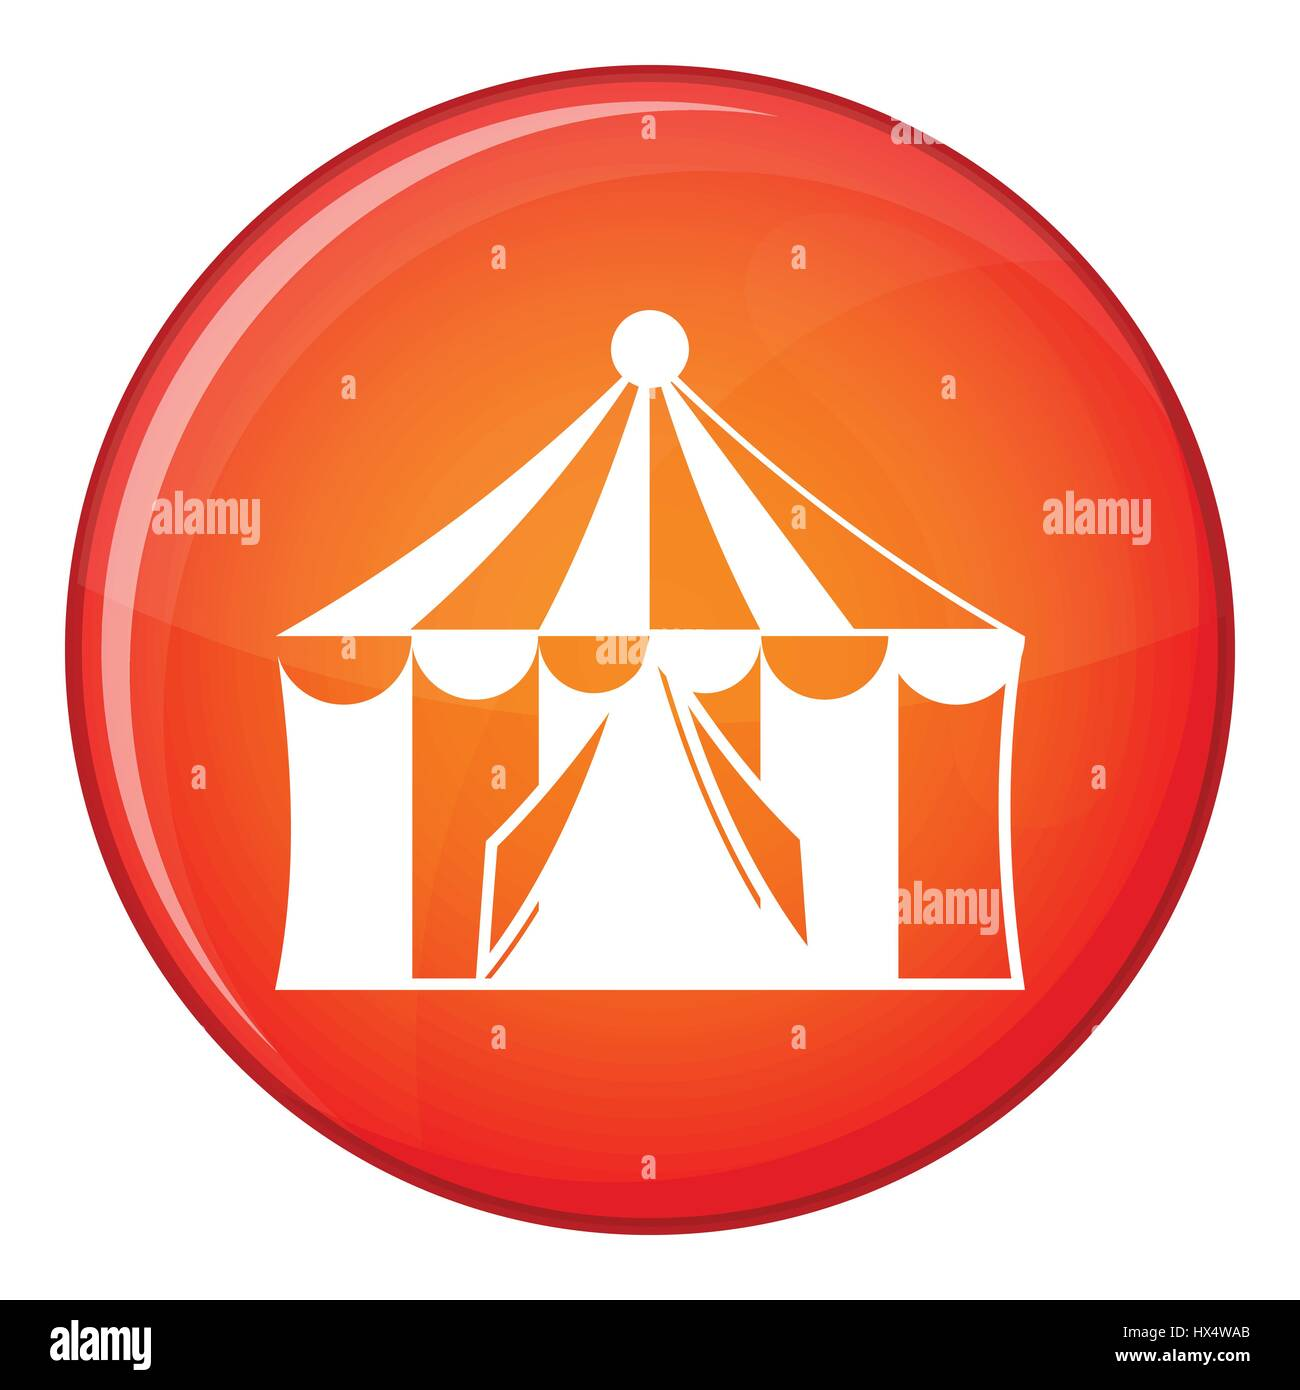 Circus tent icon, flat style - Stock Image